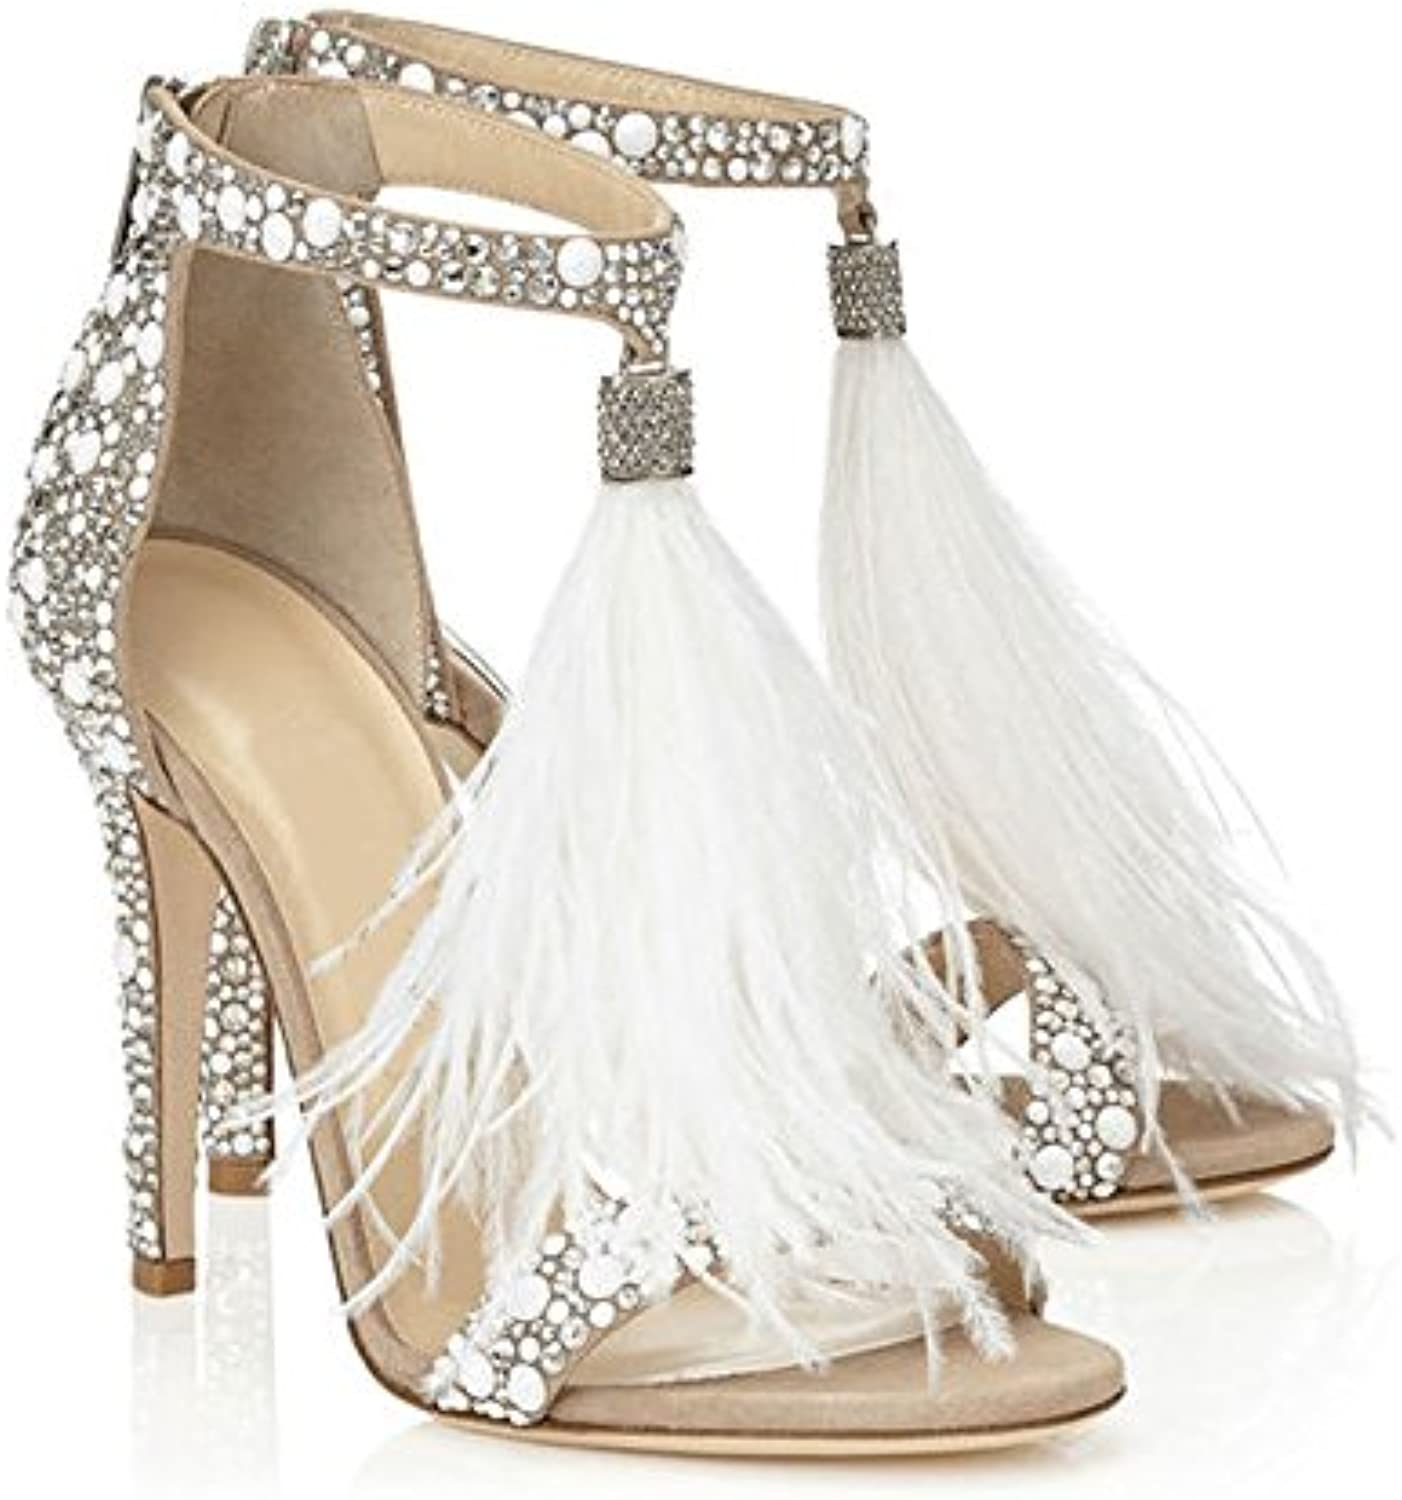 WHW Women's Summer Stretch Satin Wedding Dress Party Evening Low Heel Crystal Sandals,Apricot,42